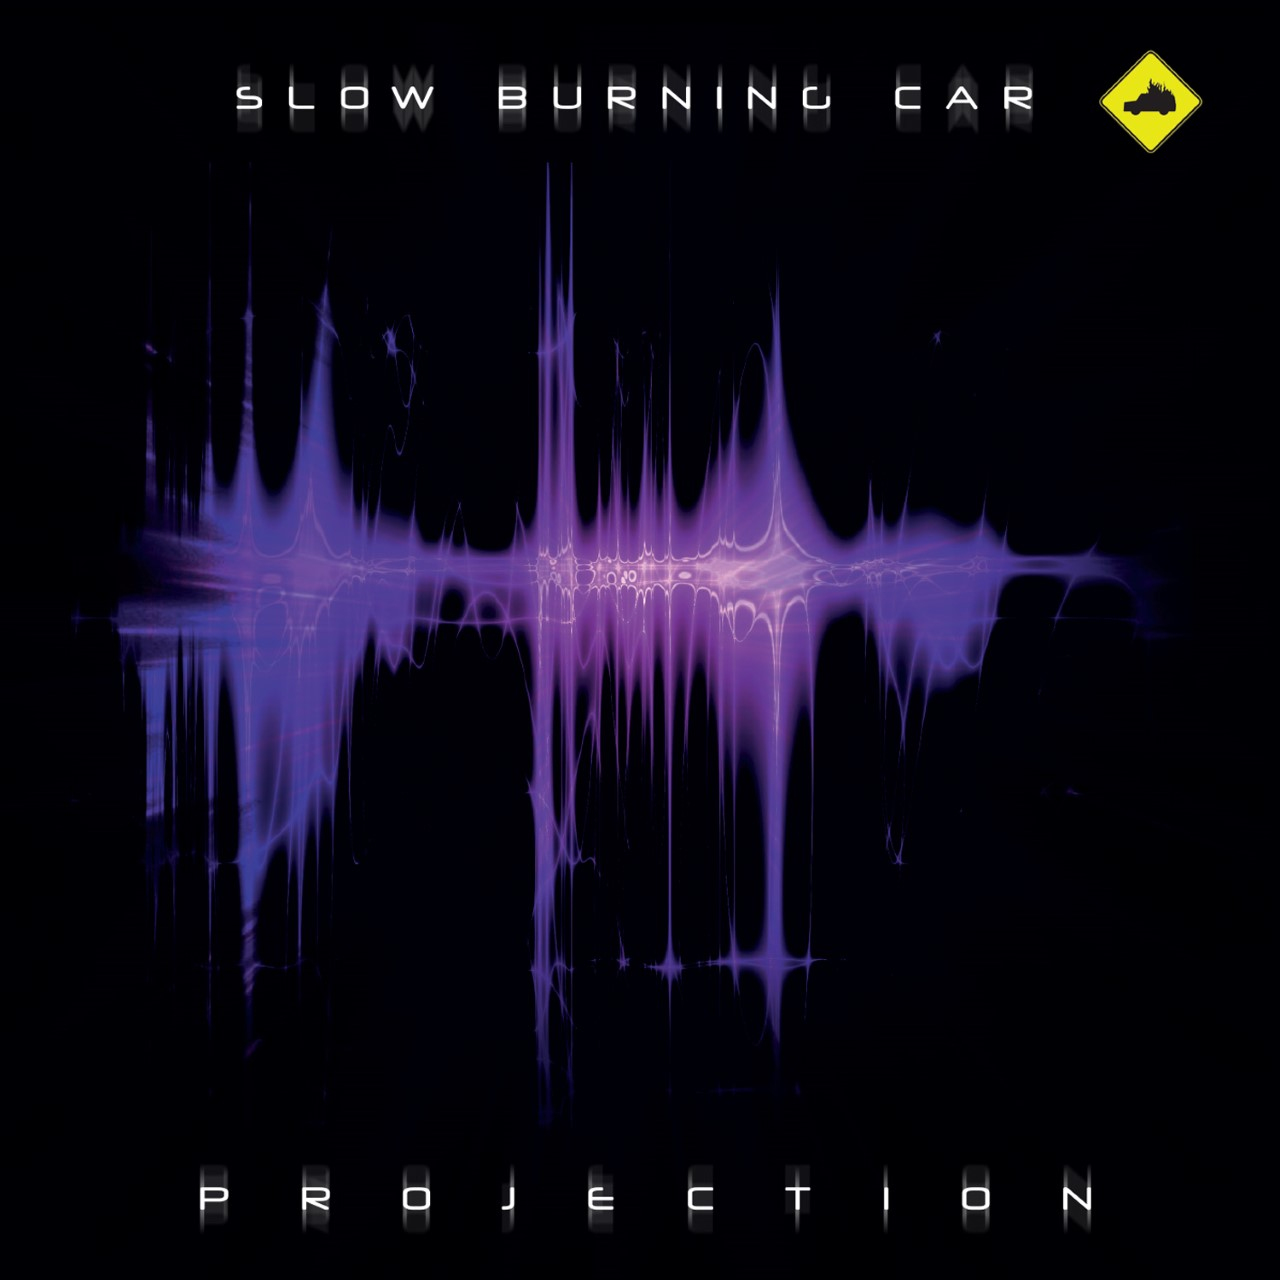 Projection Album Art